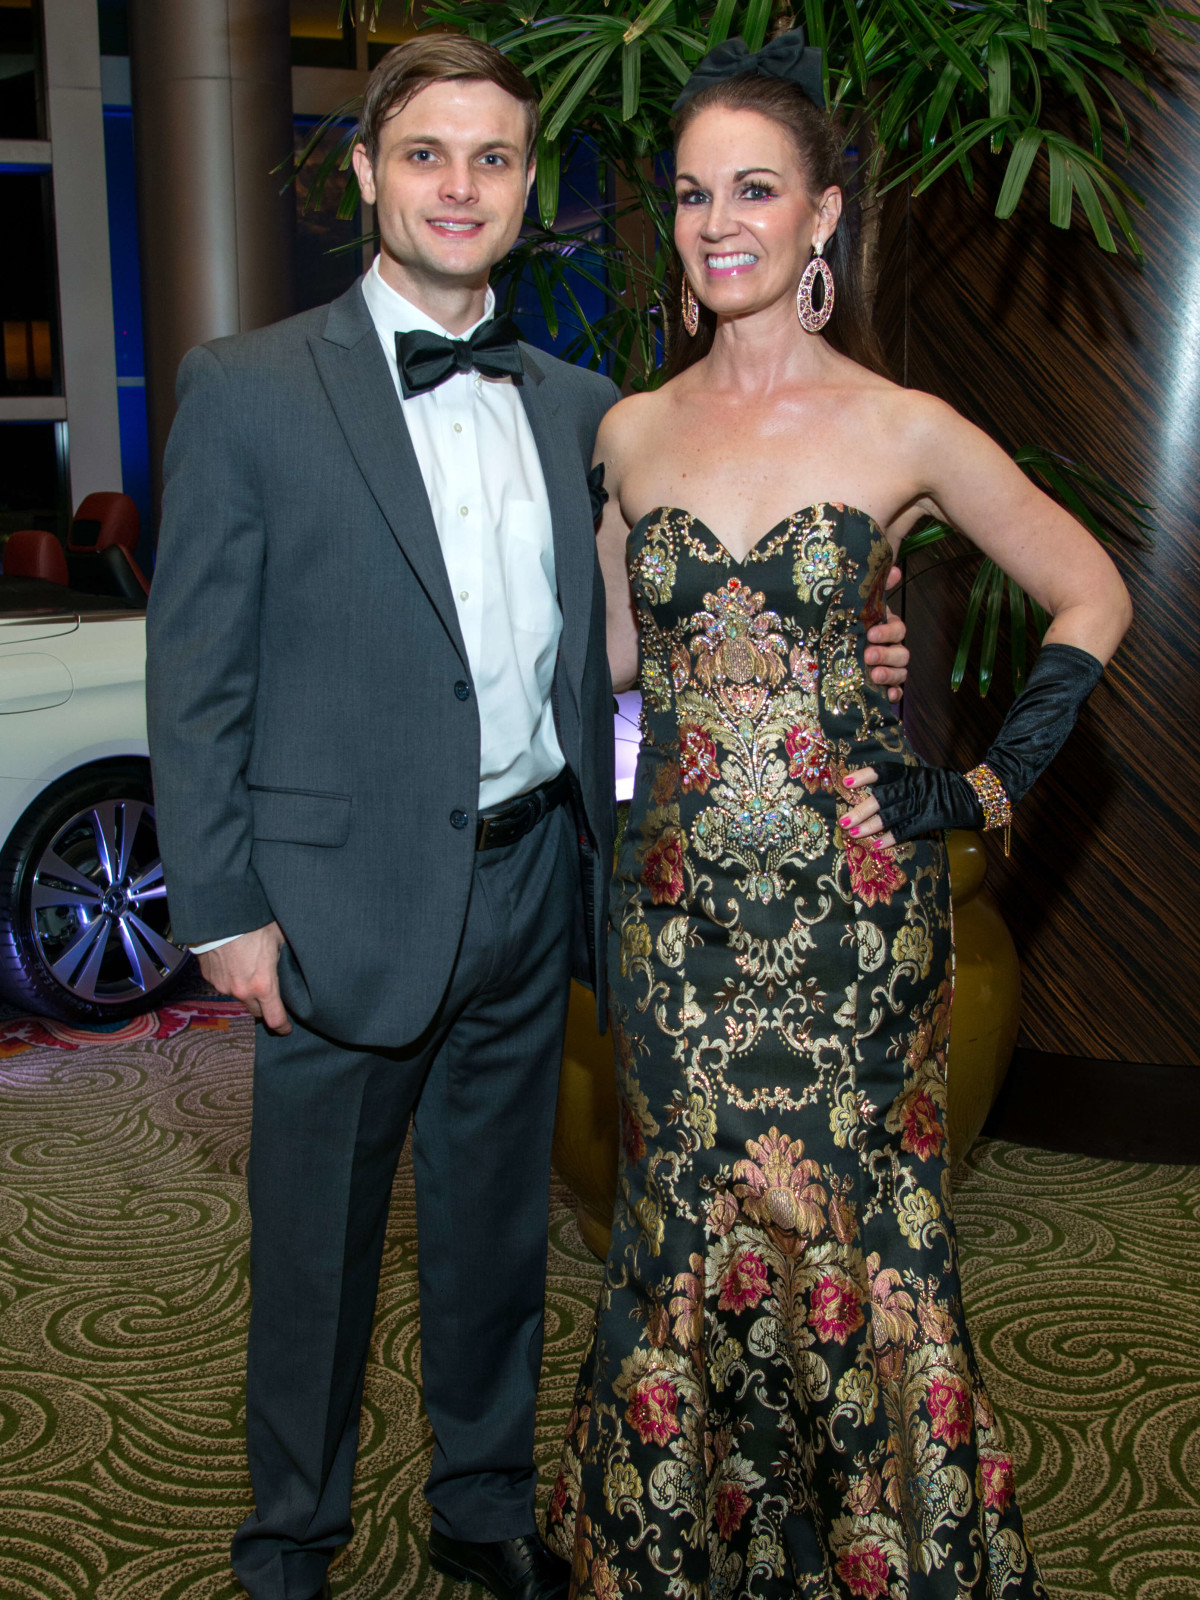 Houston, Women of Distinction fashionable gowns, Feb 2017, Kyle Hanson, Beth Muecke